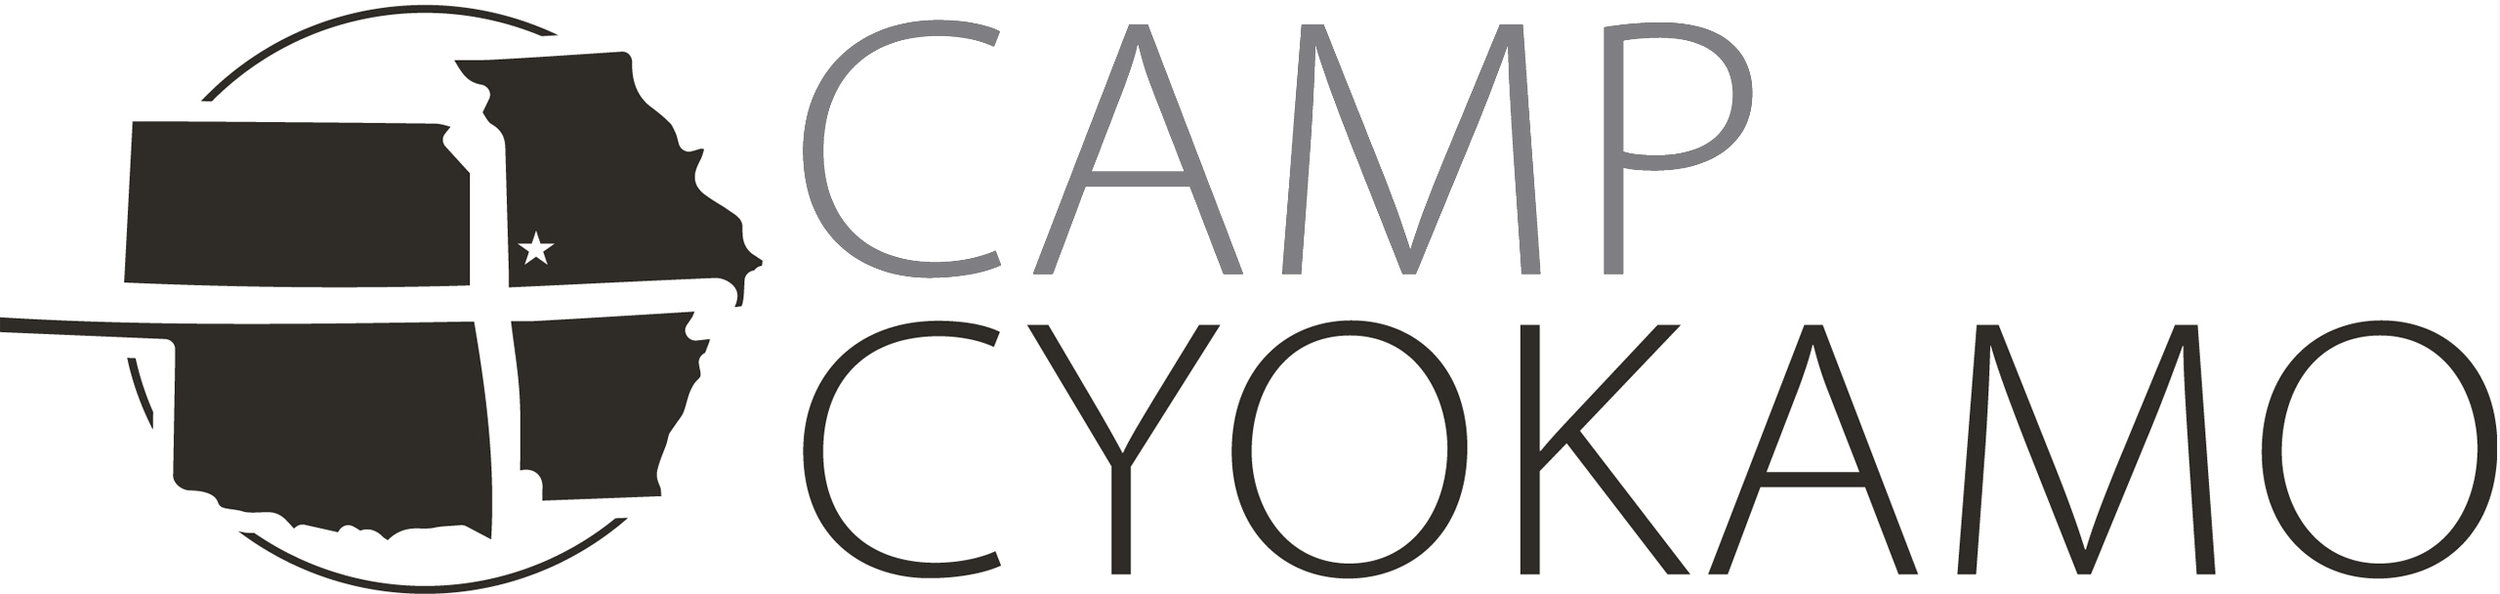 Camp Cyokamo Stacked (gray) w star.jpg